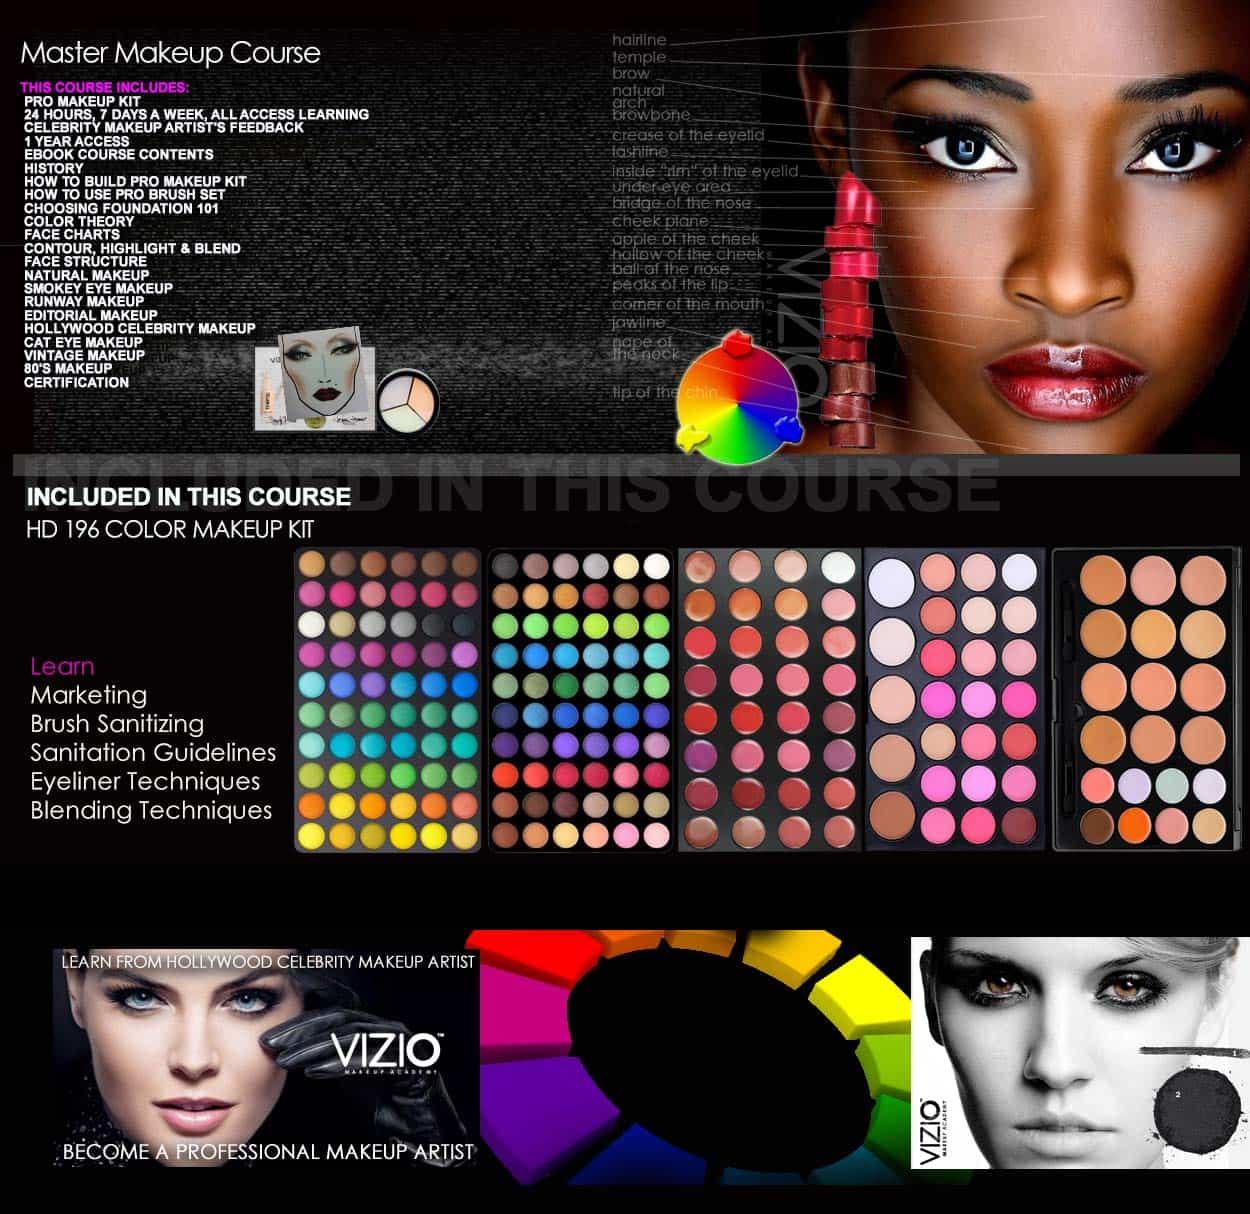 master makeup classes online vizio makeup academy. Black Bedroom Furniture Sets. Home Design Ideas